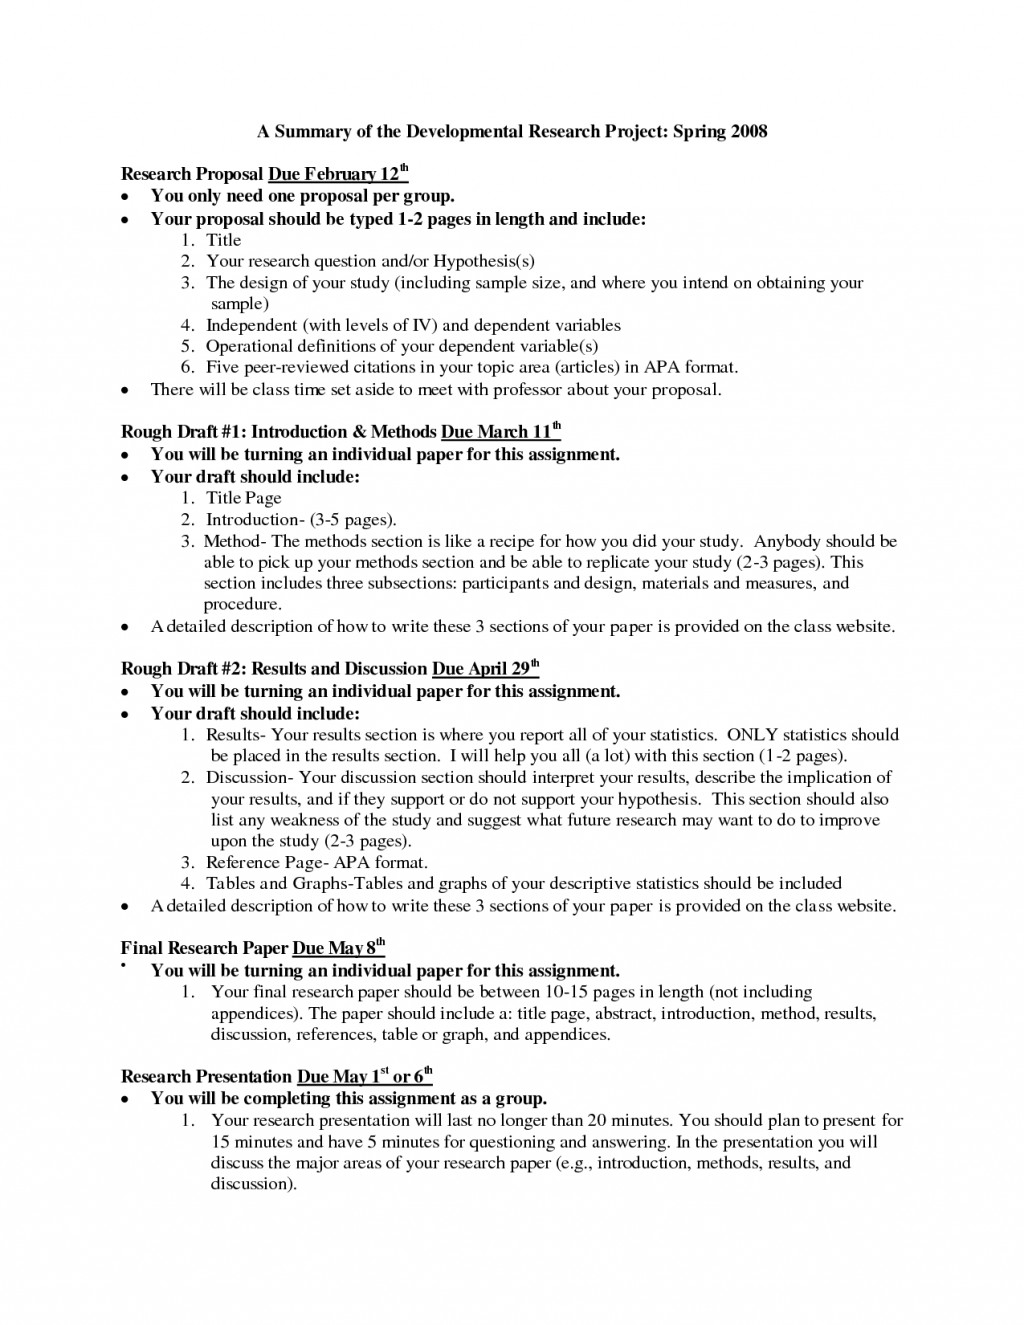 009 Good Topics For Researchs Psychology Undergraduate Resume Unique Sample Of Awesome Research Papers Interesting Paper History Topic College English High School Students In The Philippines Large